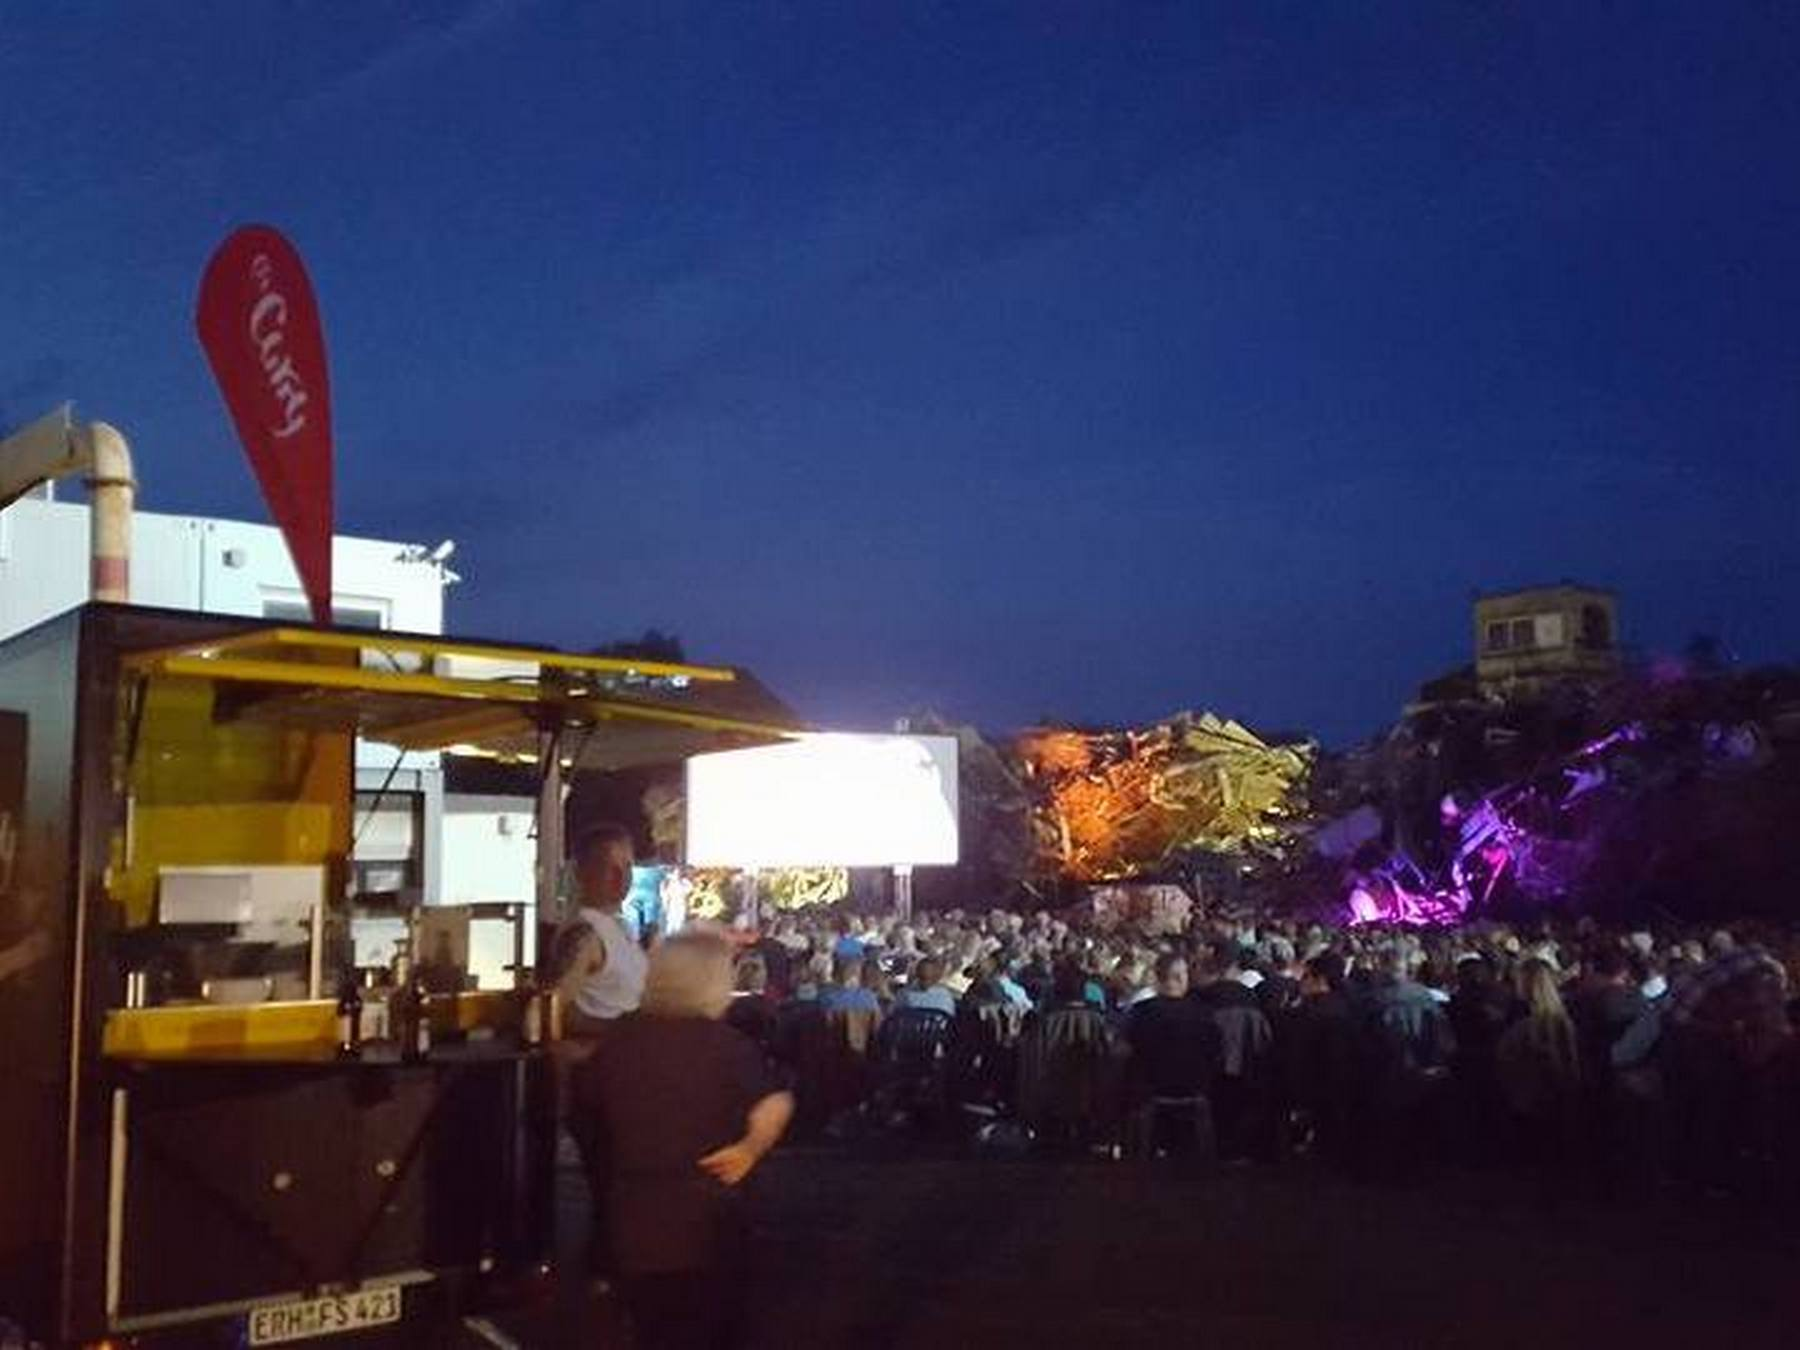 O's Curry beim Open-Air Kino / Film Festival in Nuernberg